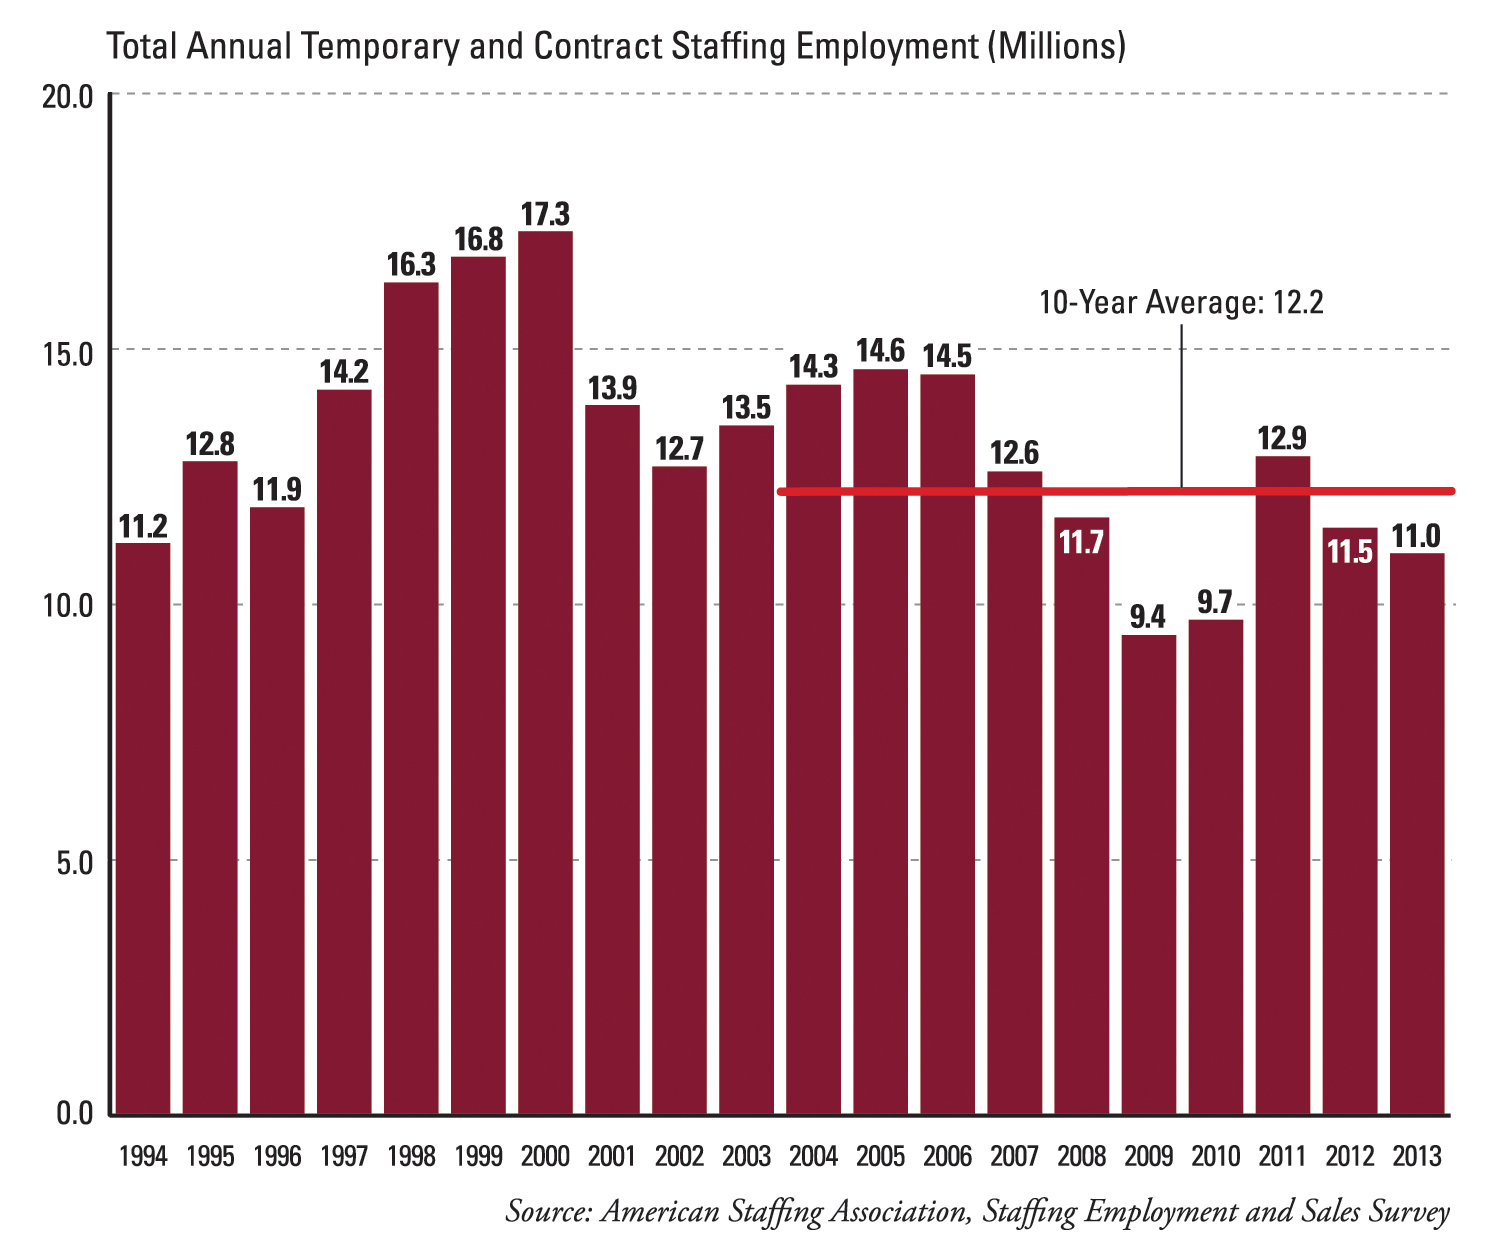 Total Annual Temporary and Contract Staffing Employment